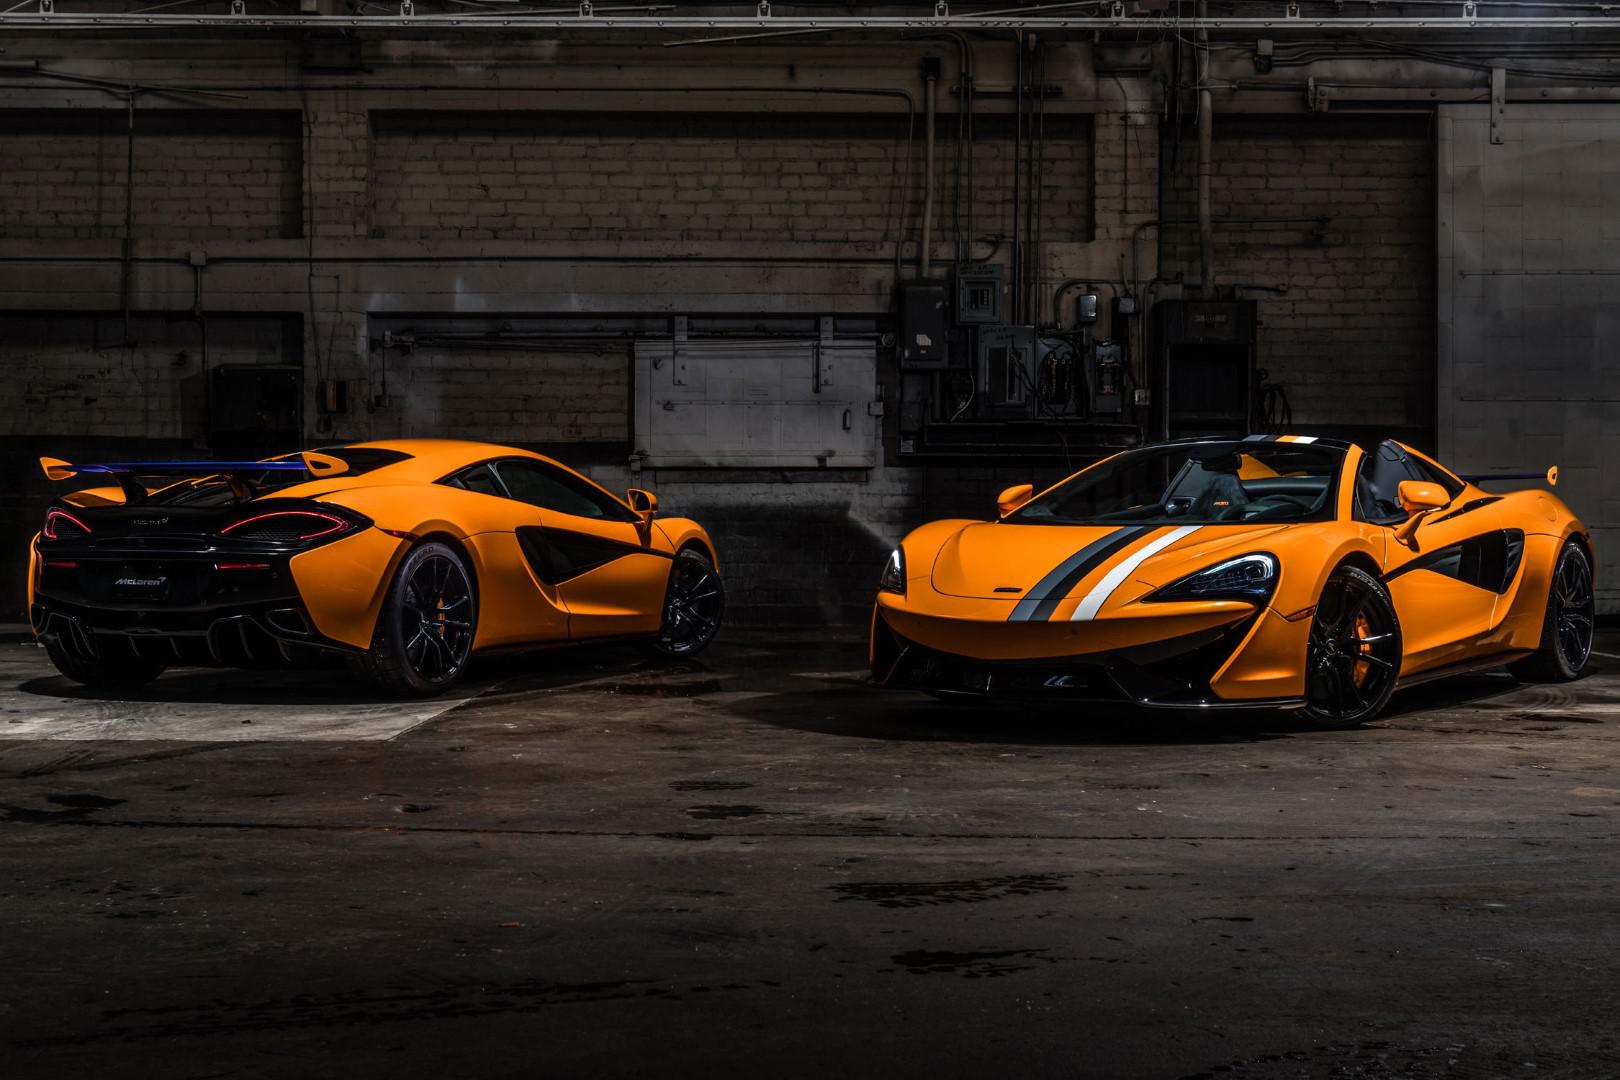 mclaren-special-operations-devoile-une-nouvelle-collection-racing-through-the-ages-928-2.jpg